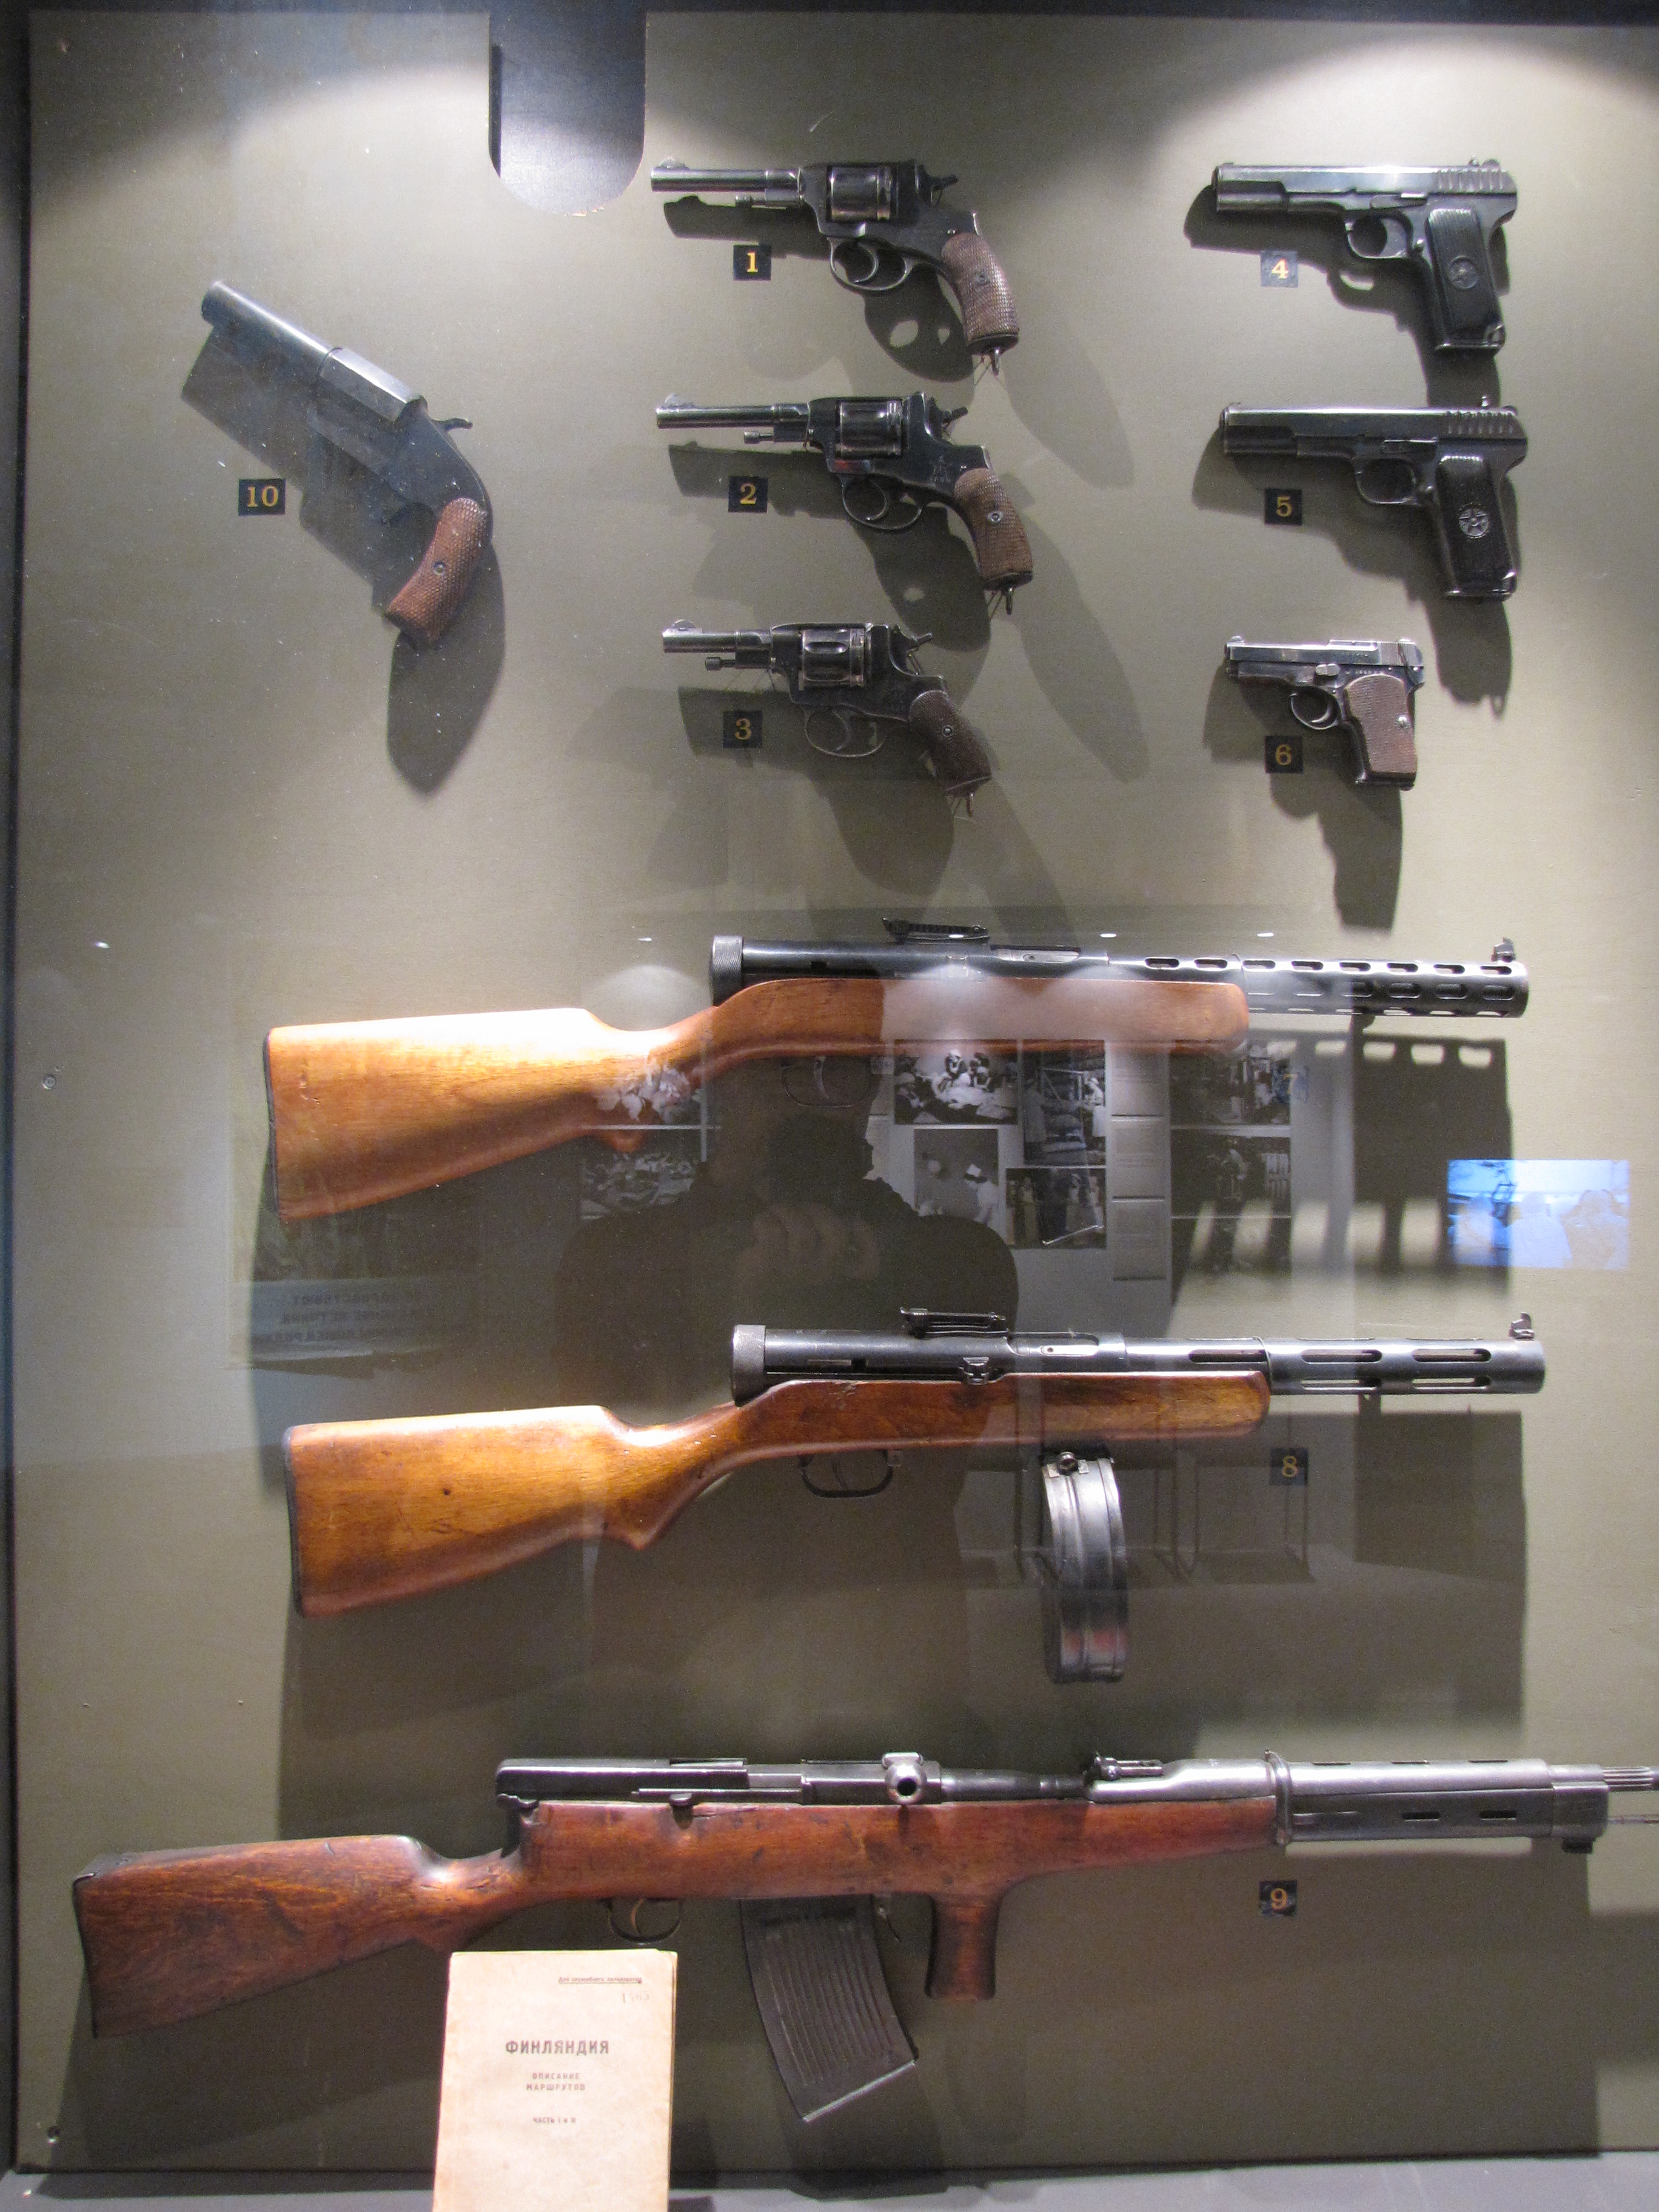 Description red army pistols and automatic weapons jpg